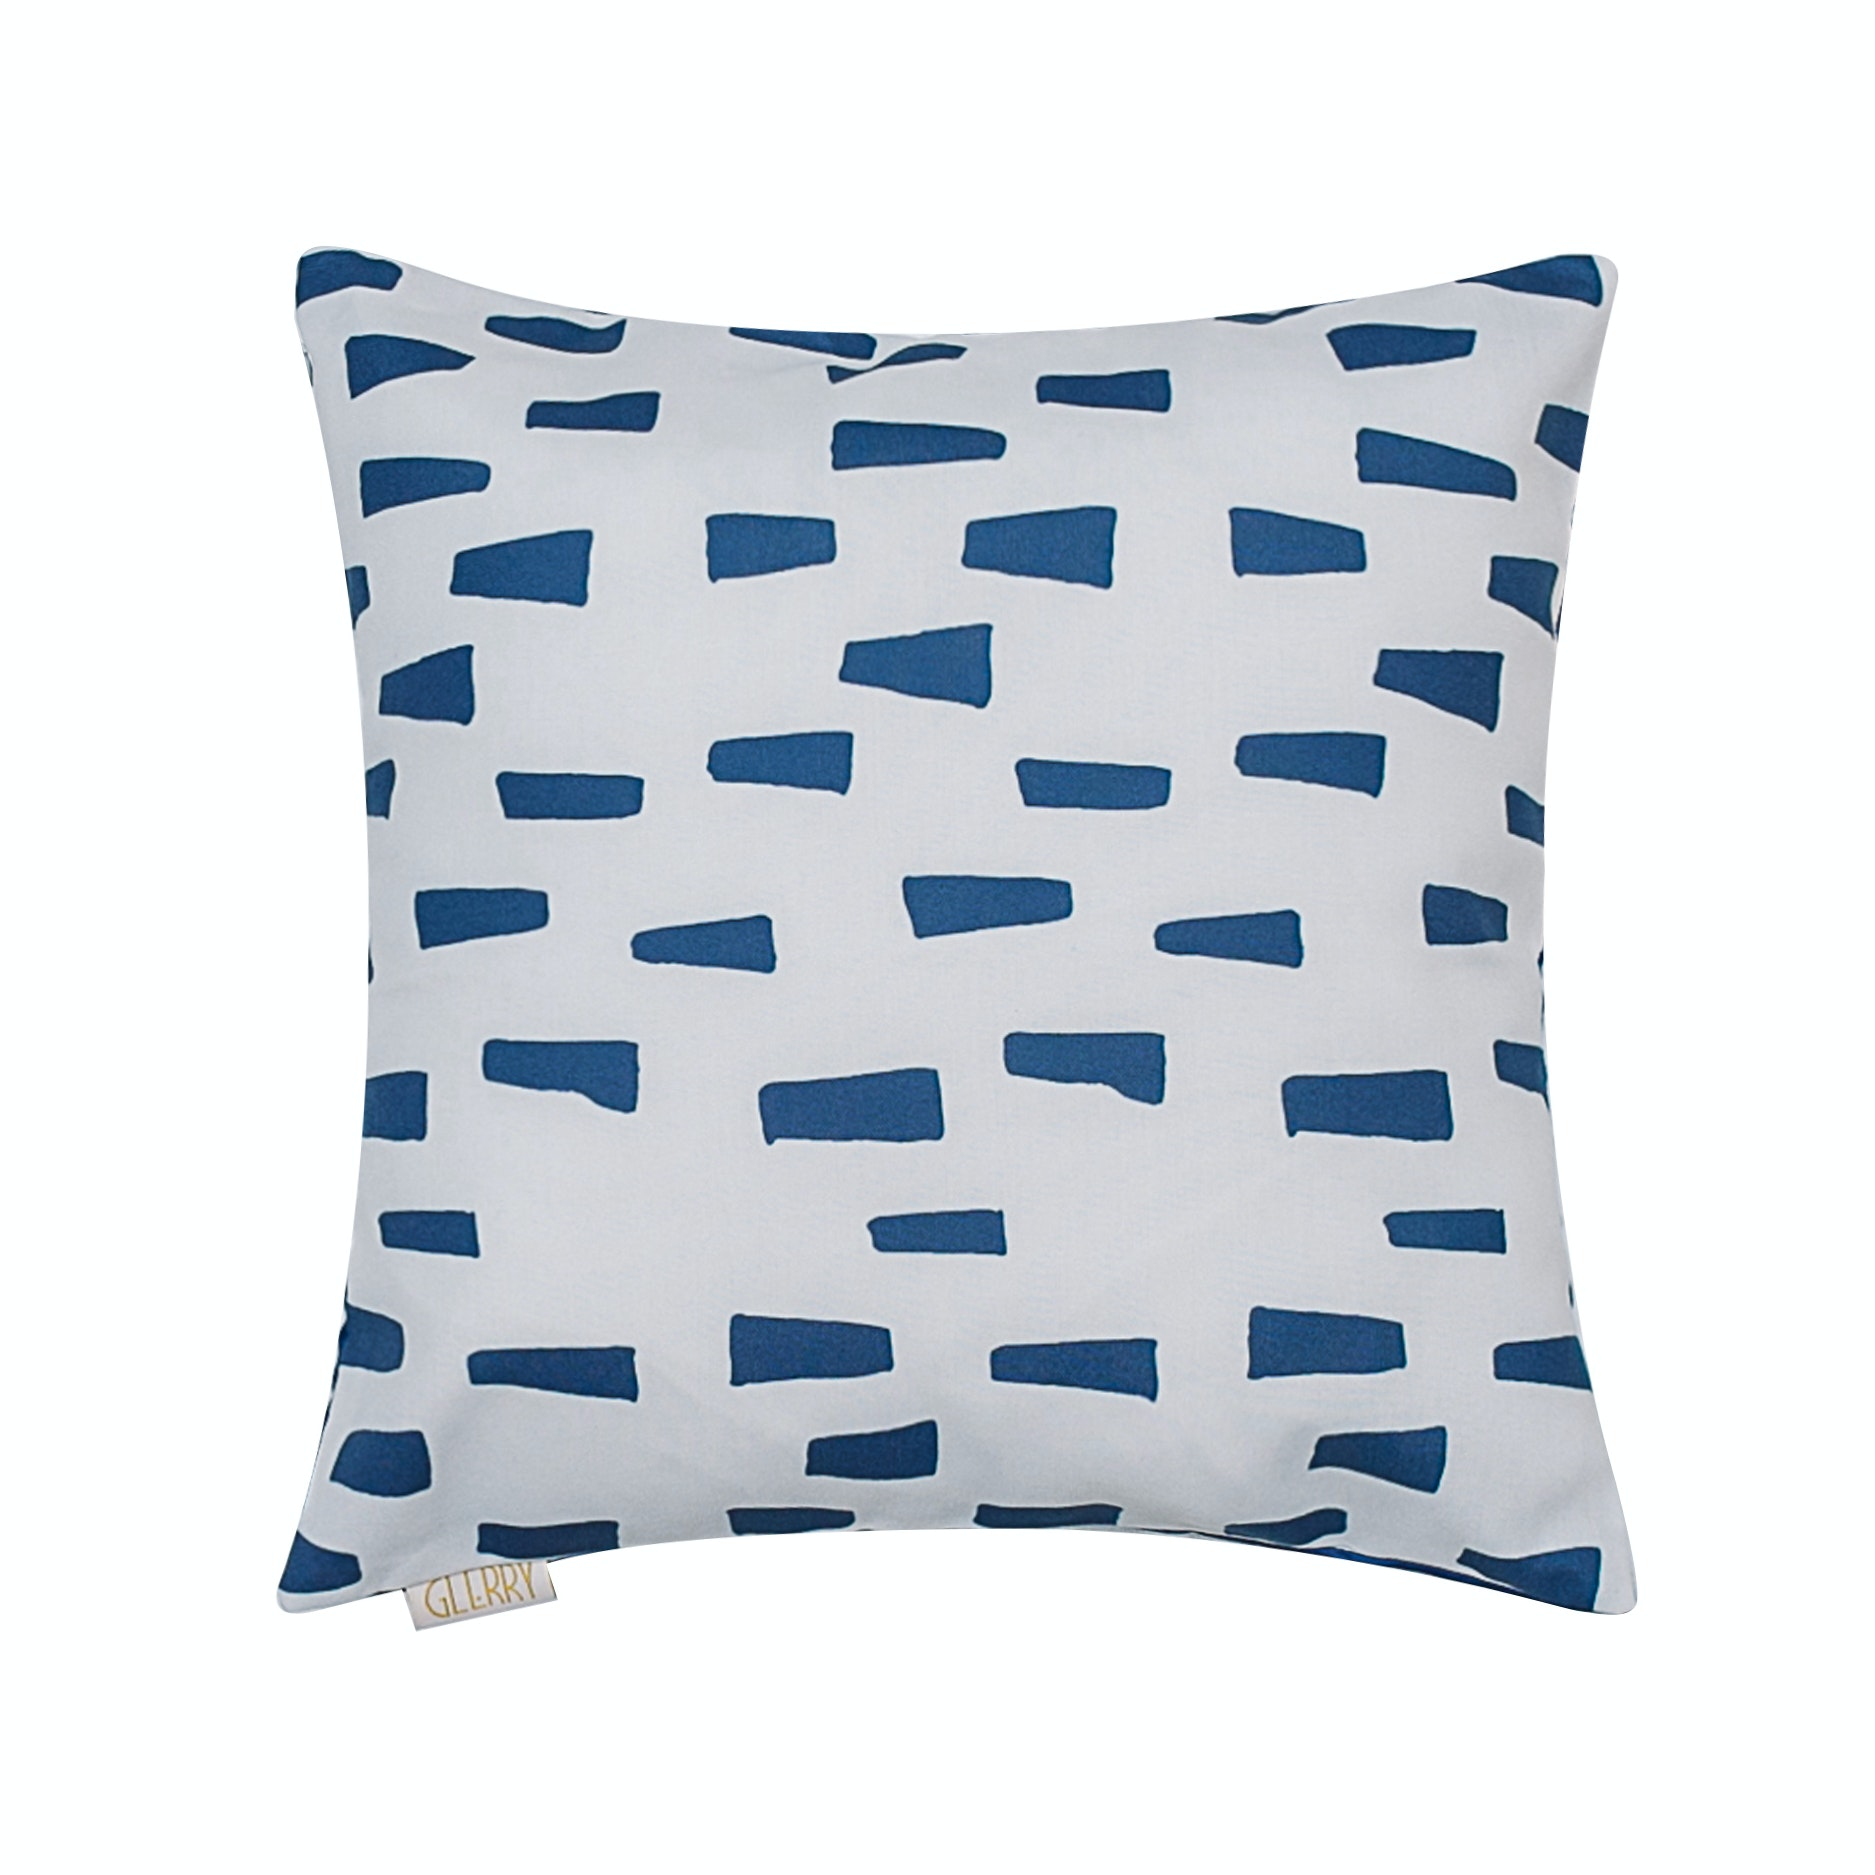 Glerry Home Decor Blue Rain Cushion+Insert 40x40cm